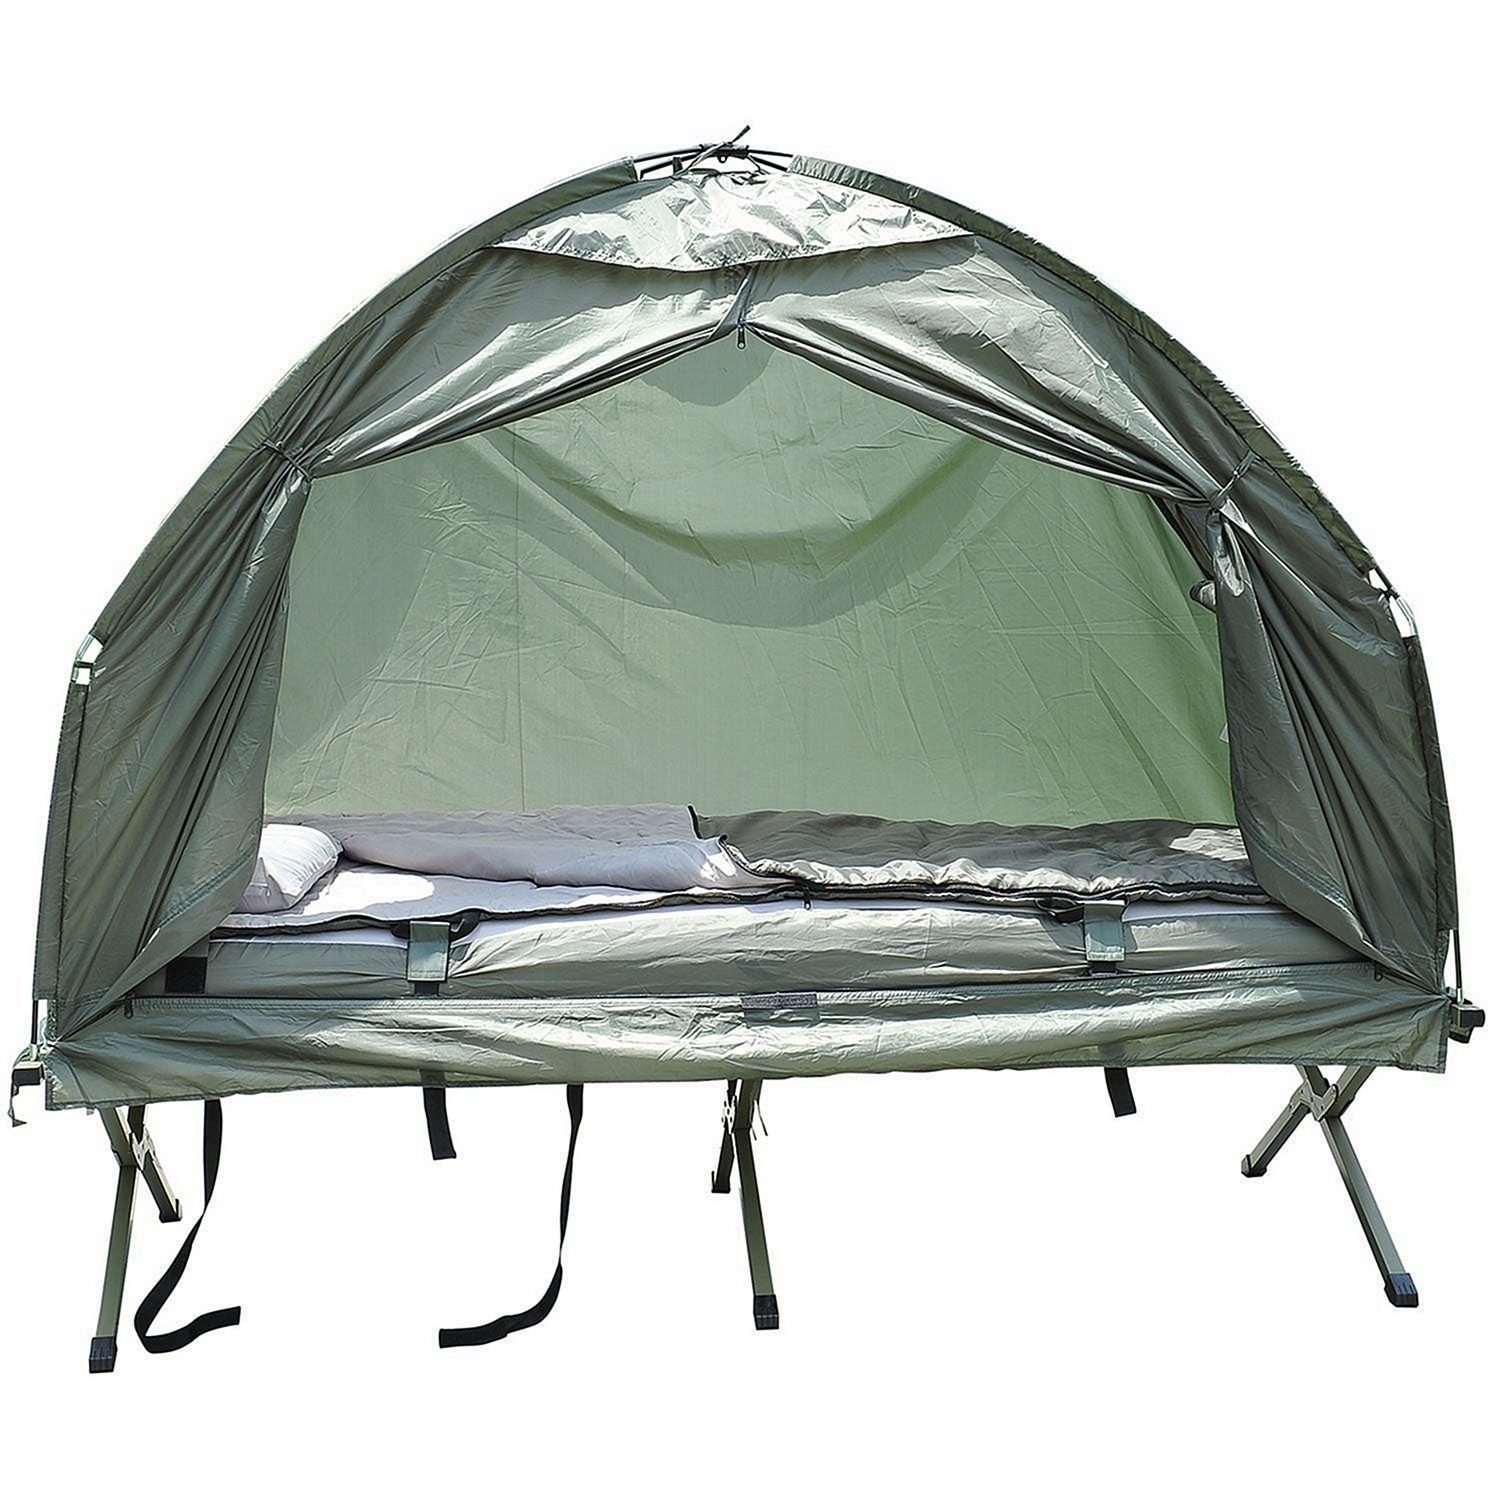 Outsunny Compact Portable Pop-Up Tent Cot